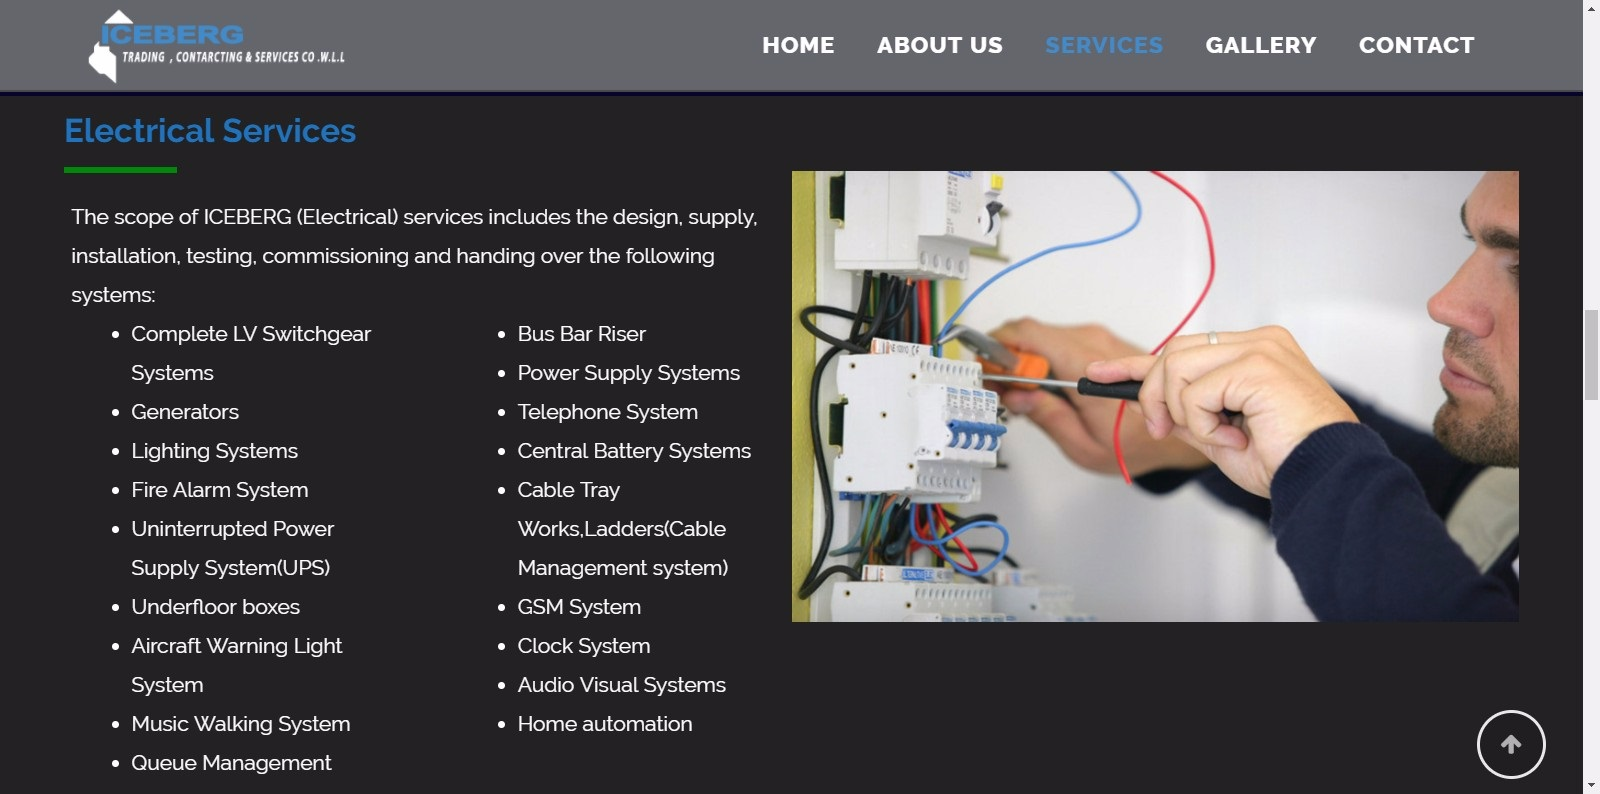 Web Design Archives Qatar It Solutions And Home Automation Wiring Iceberg Trading Contracting Services Co